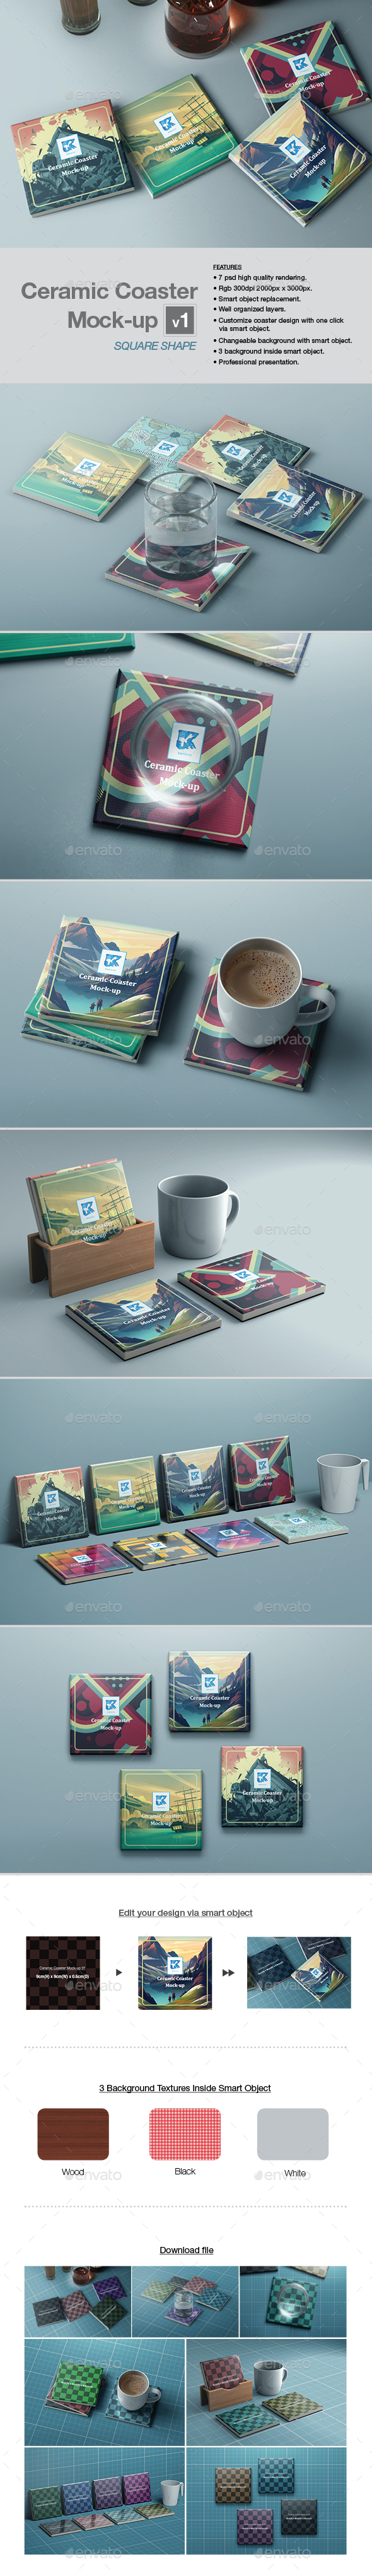 Ceramic Coaster Mock-up v1 - Print Product Mock-Ups